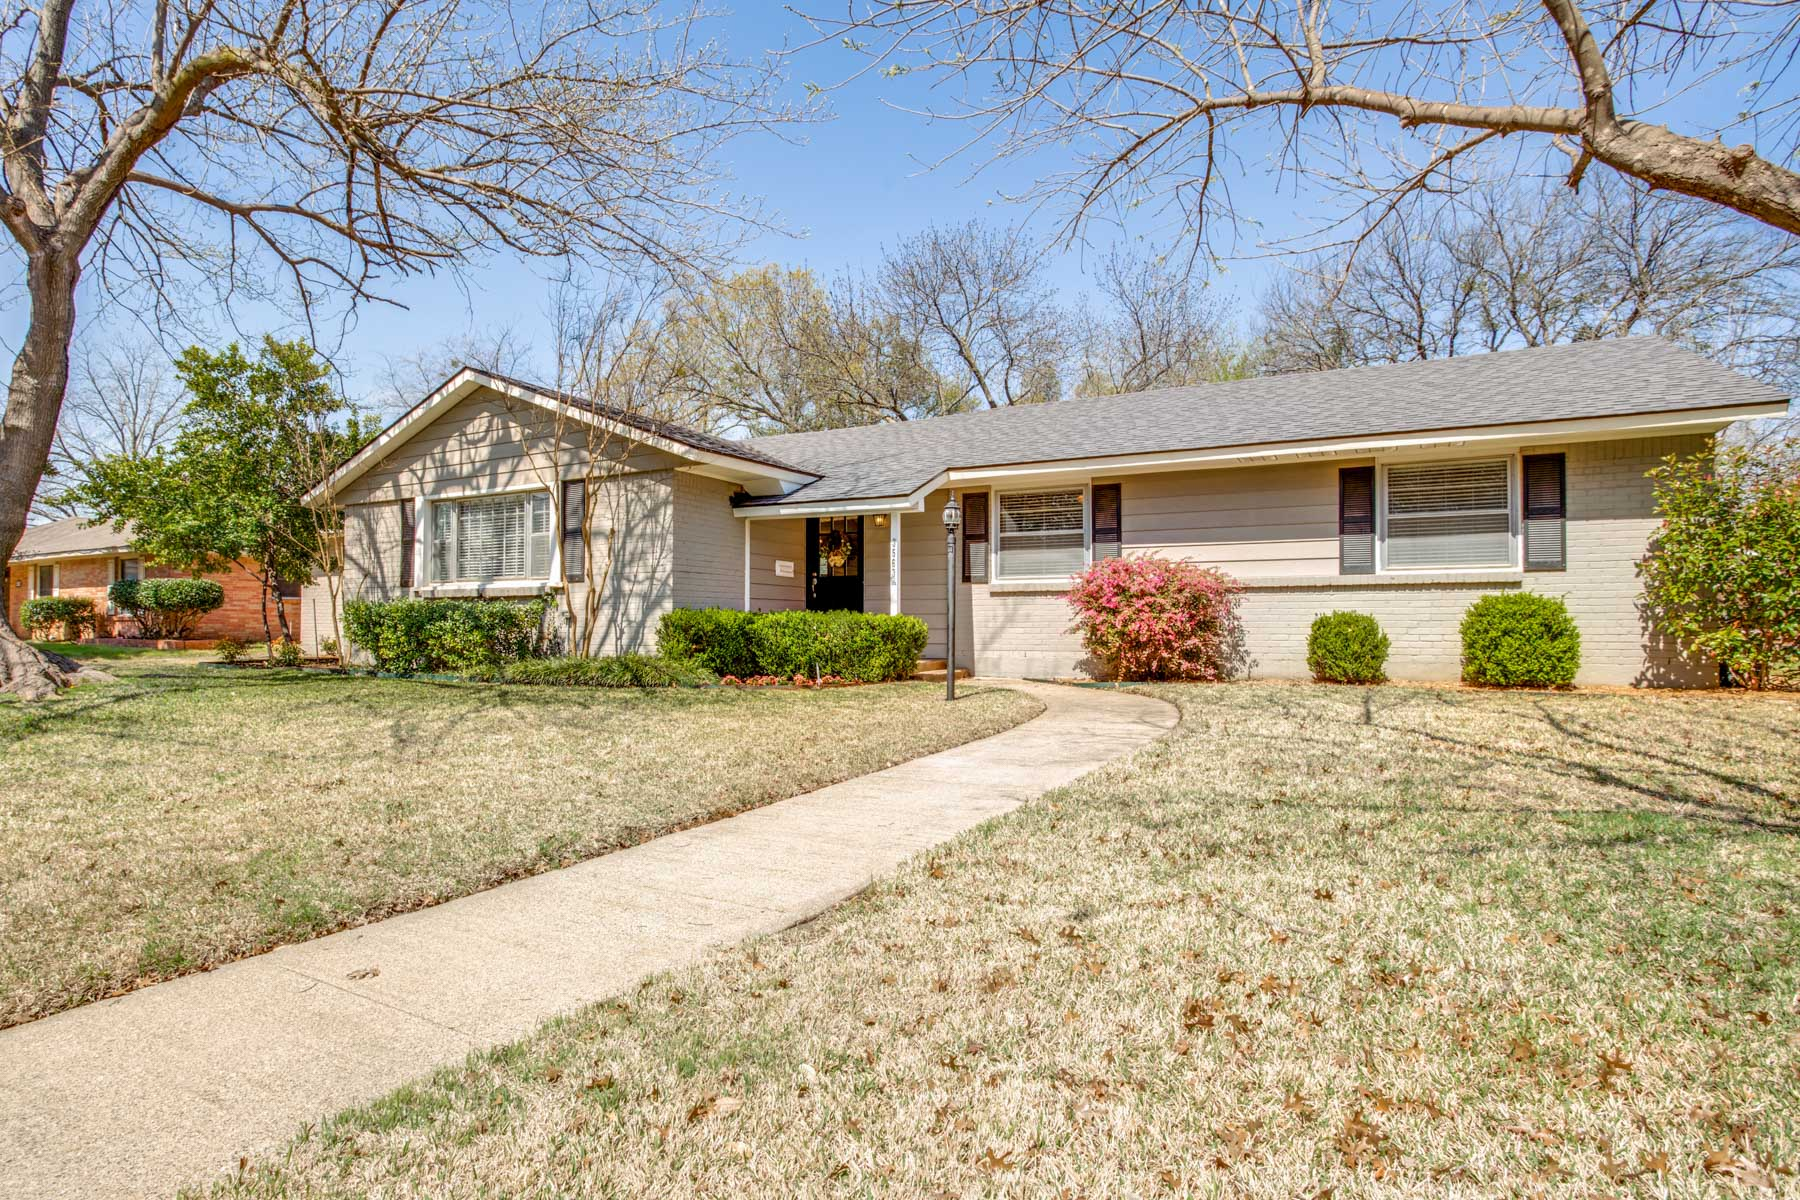 Single Family Home for Sale at Charming Transitional in Highland North 3563 Merrell Road, Dallas, Texas, 75229 United States